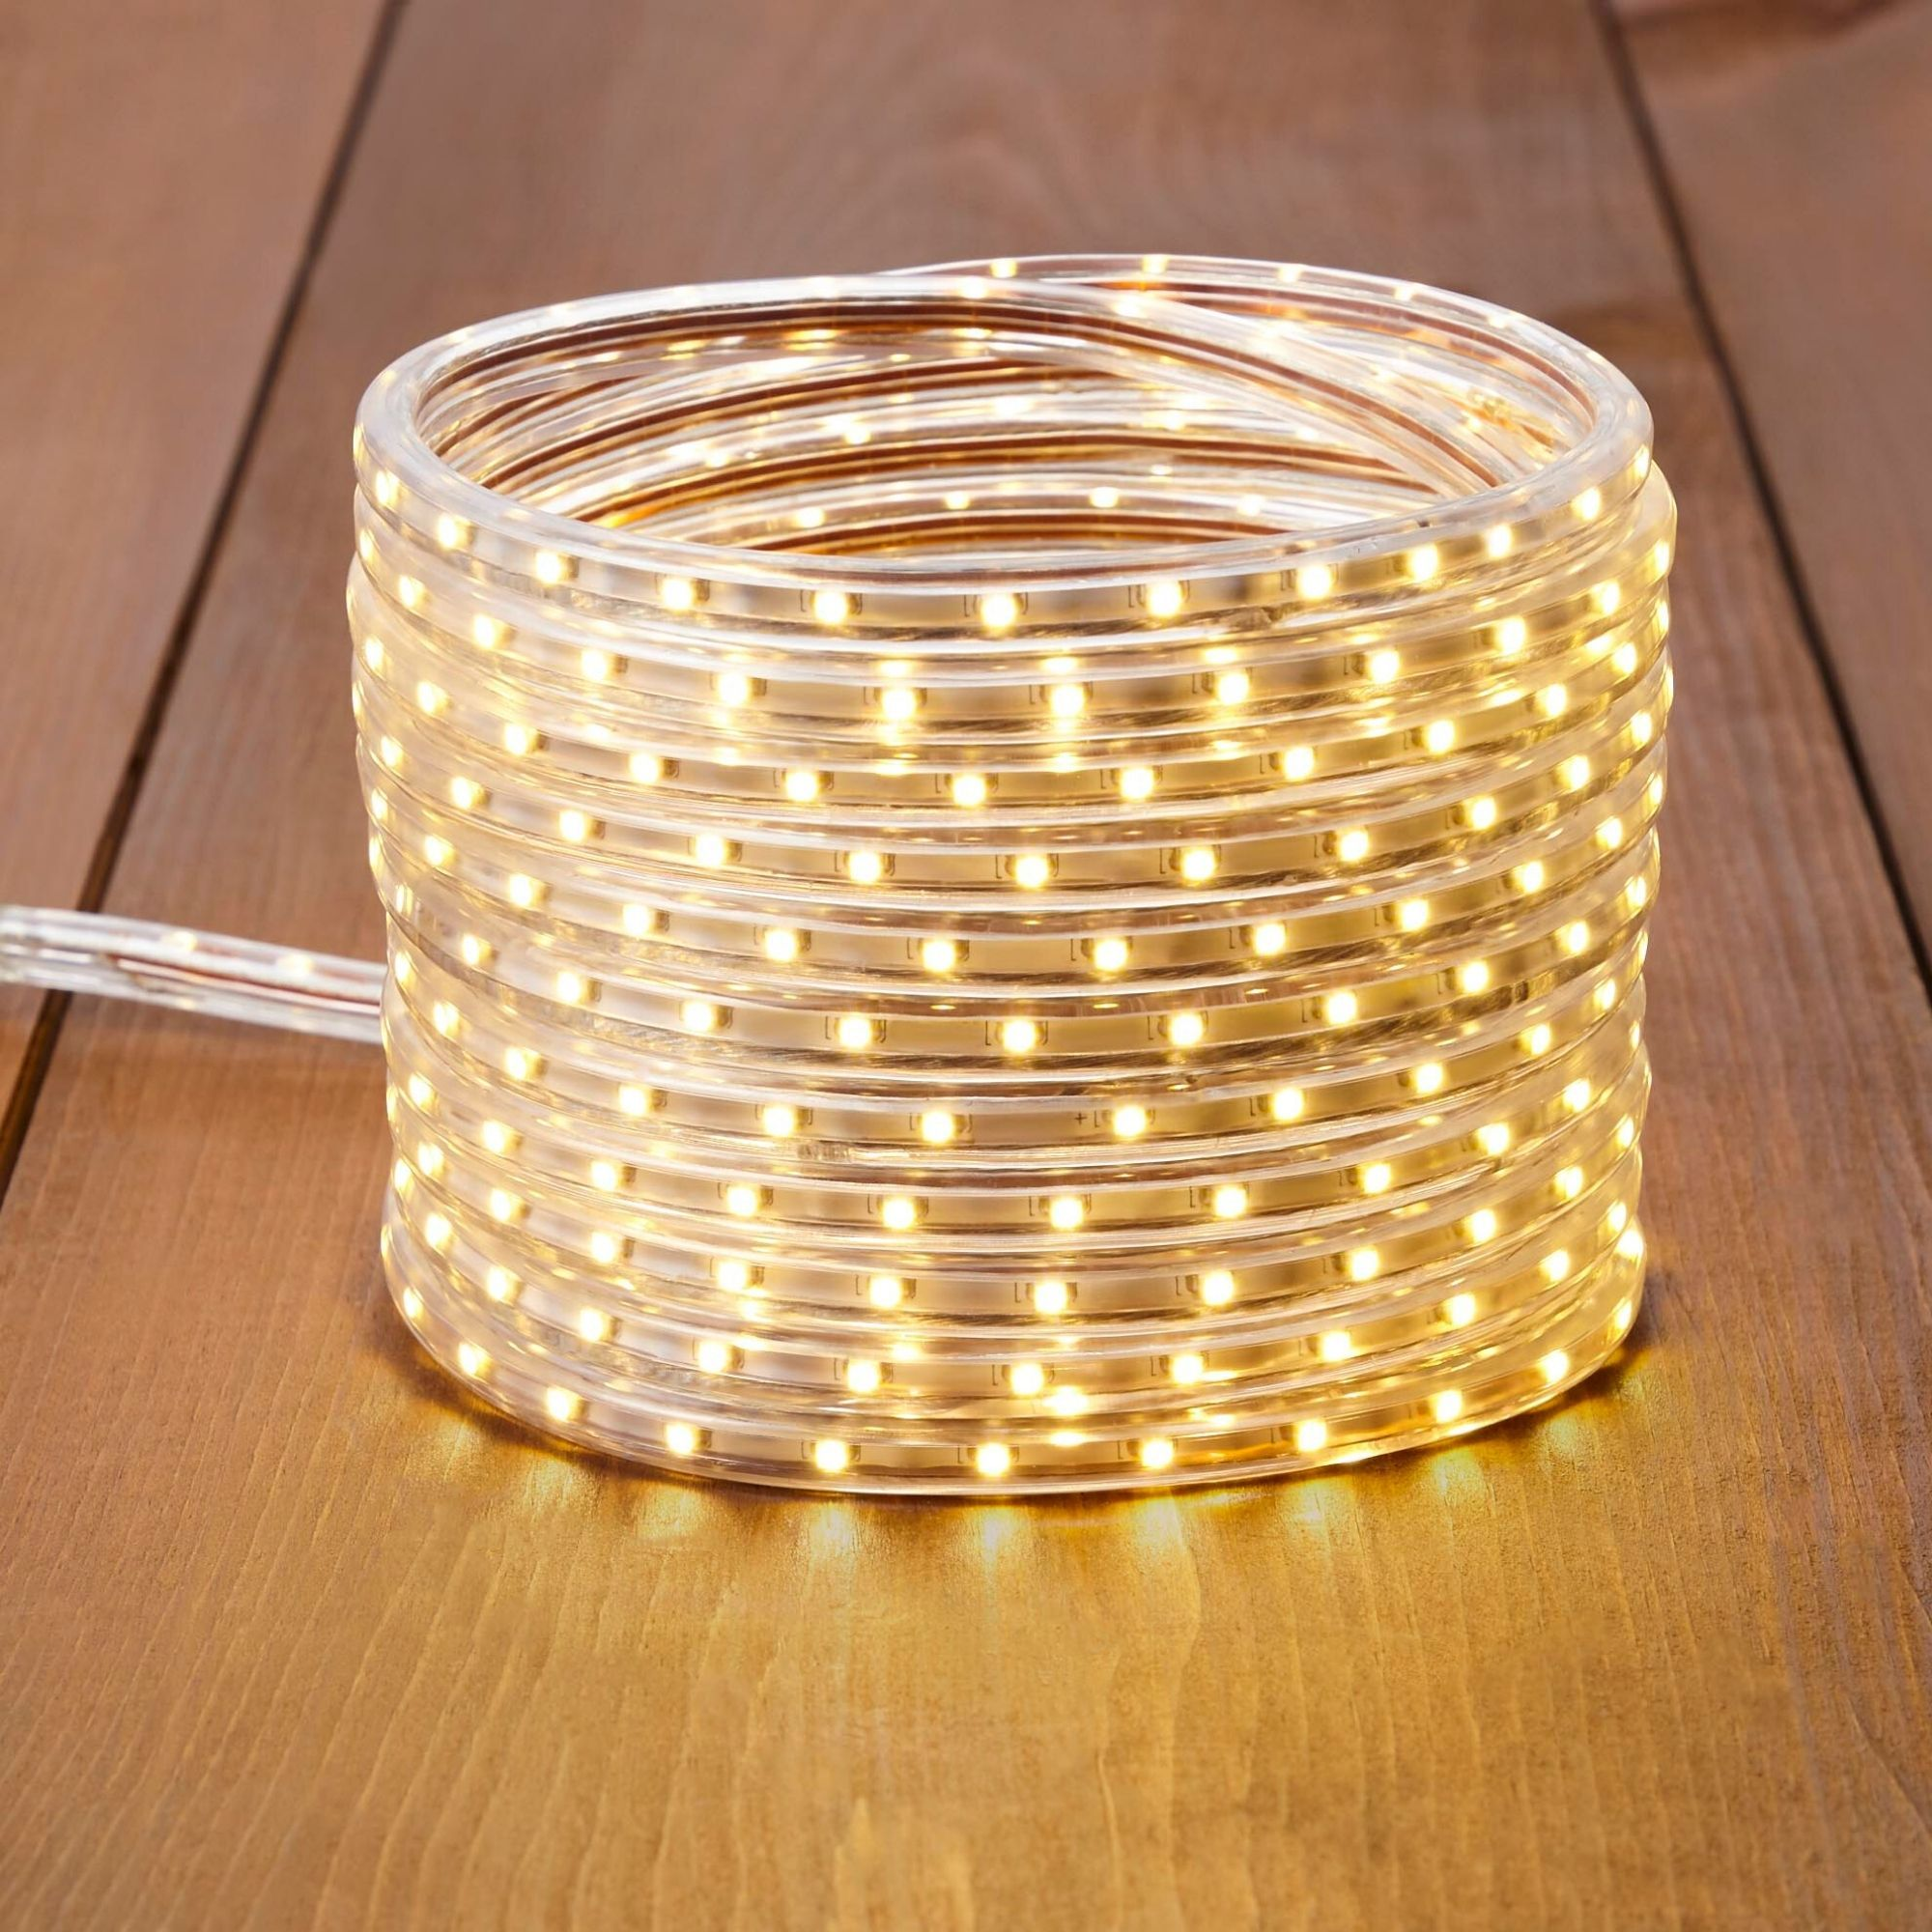 Flexible LED Rope Light - 23-Ft - Warm White